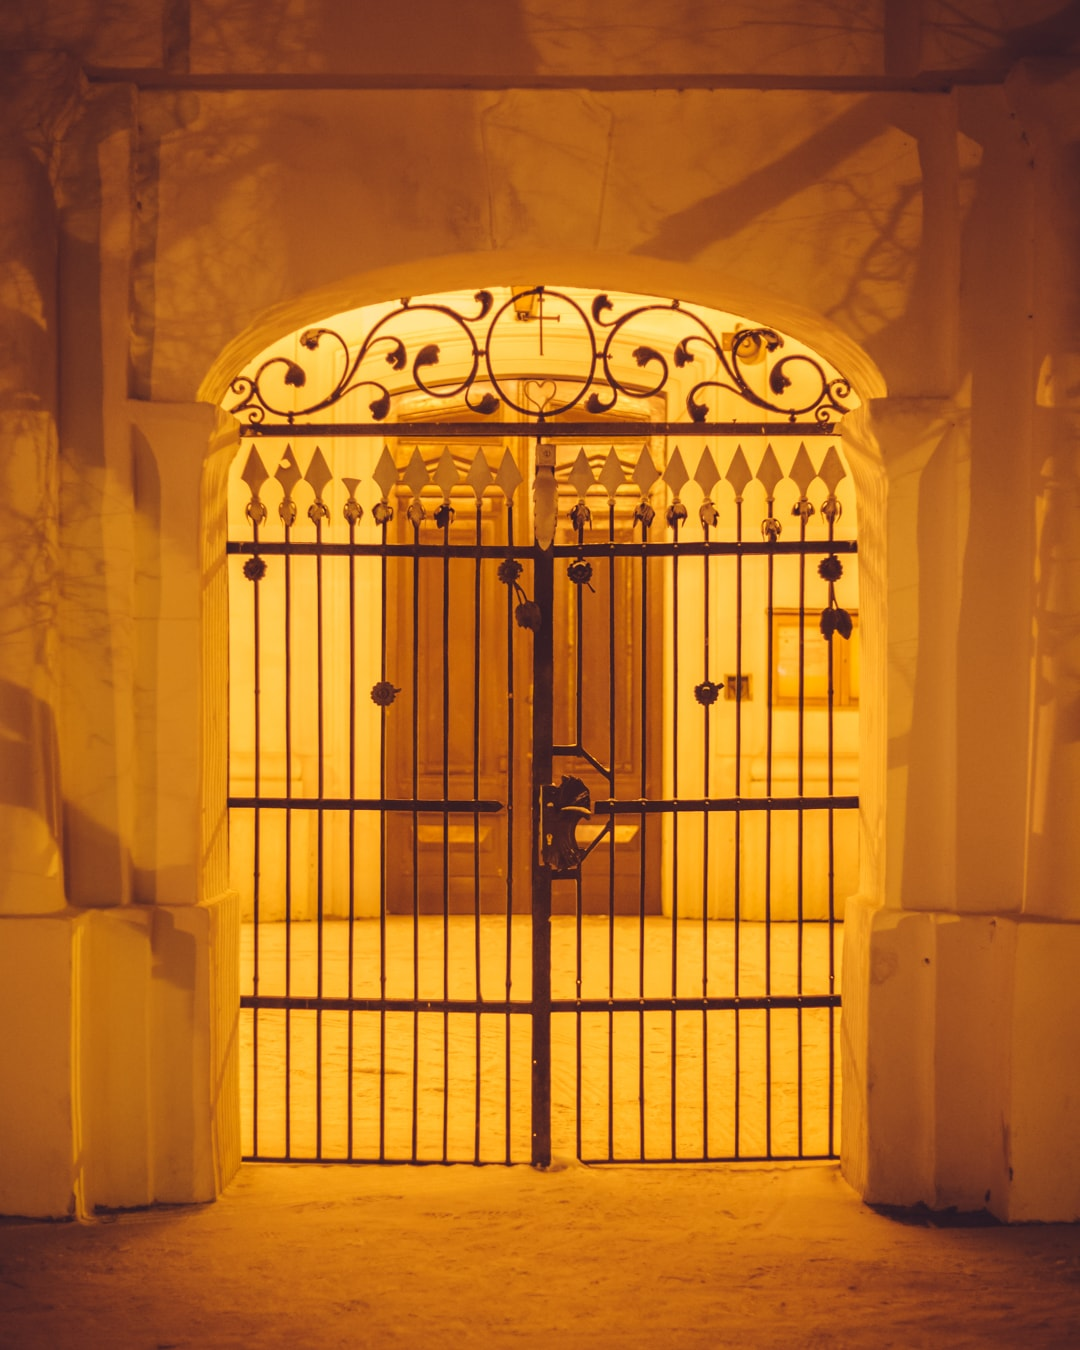 cast iron, gate, wall, sepia, spearhead, door, building, church, architecture, doorway